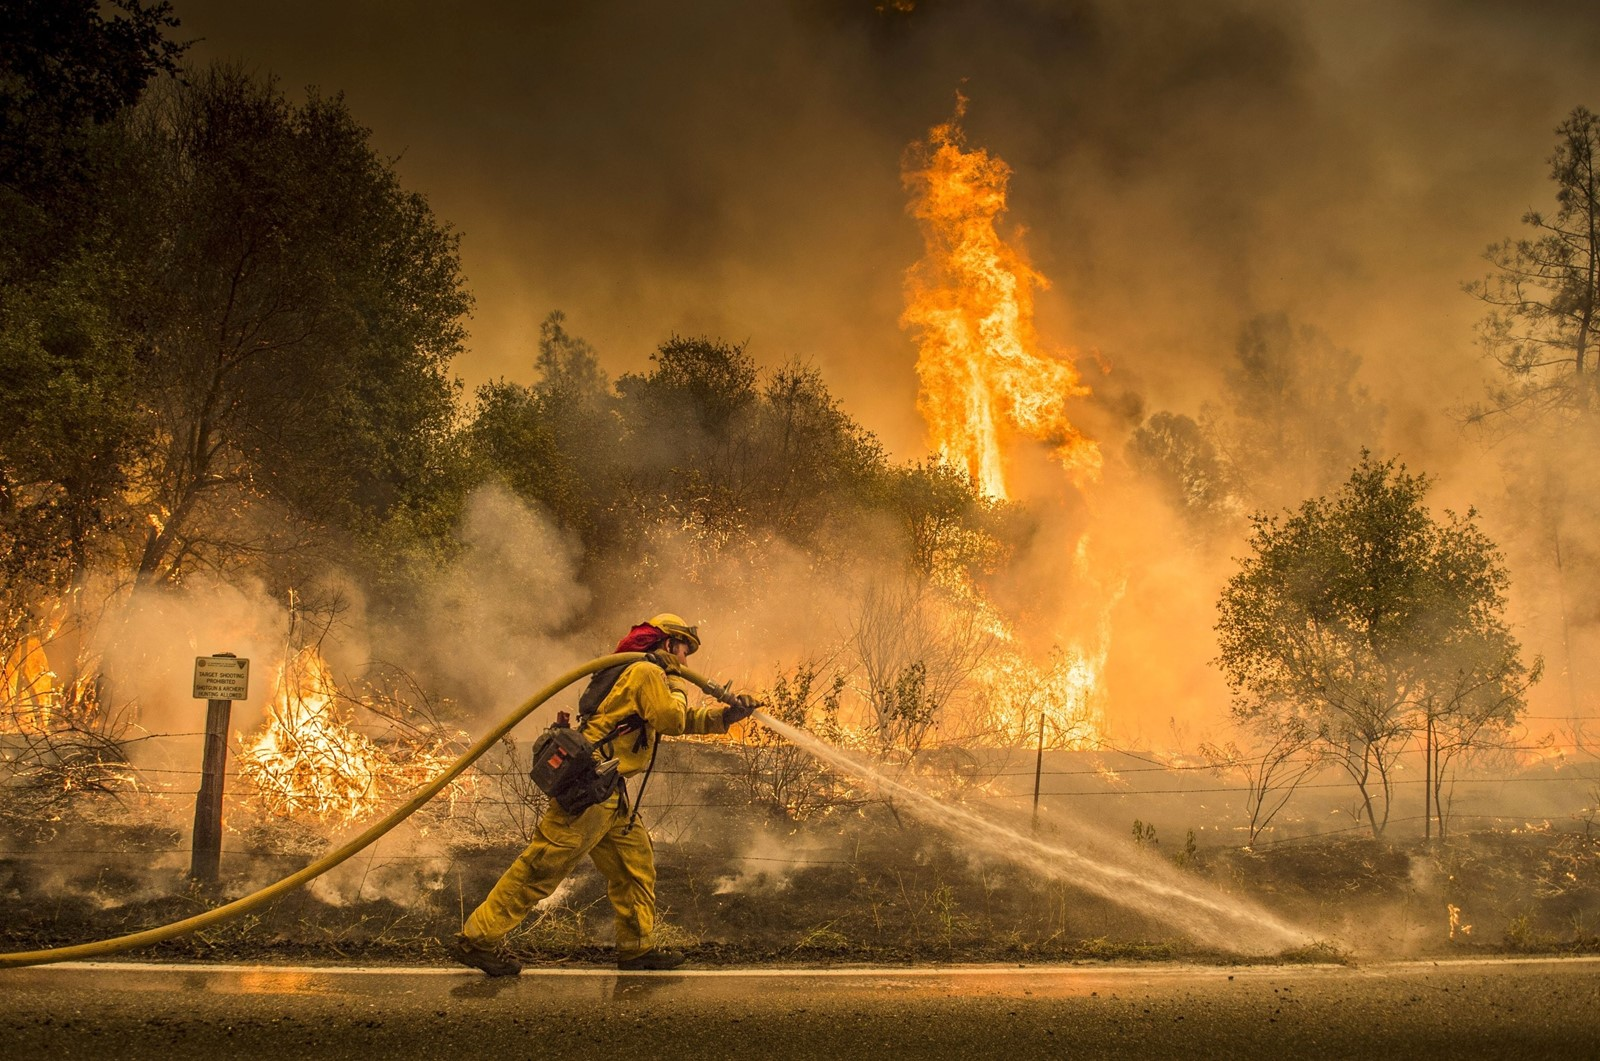 A firefighter sprays a backburn on Cloverdale Road near Igo on Saturday as scorching heat, winds and dry conditions persisted. — Photograph: Hector Amezcua/Sacramento Bee.